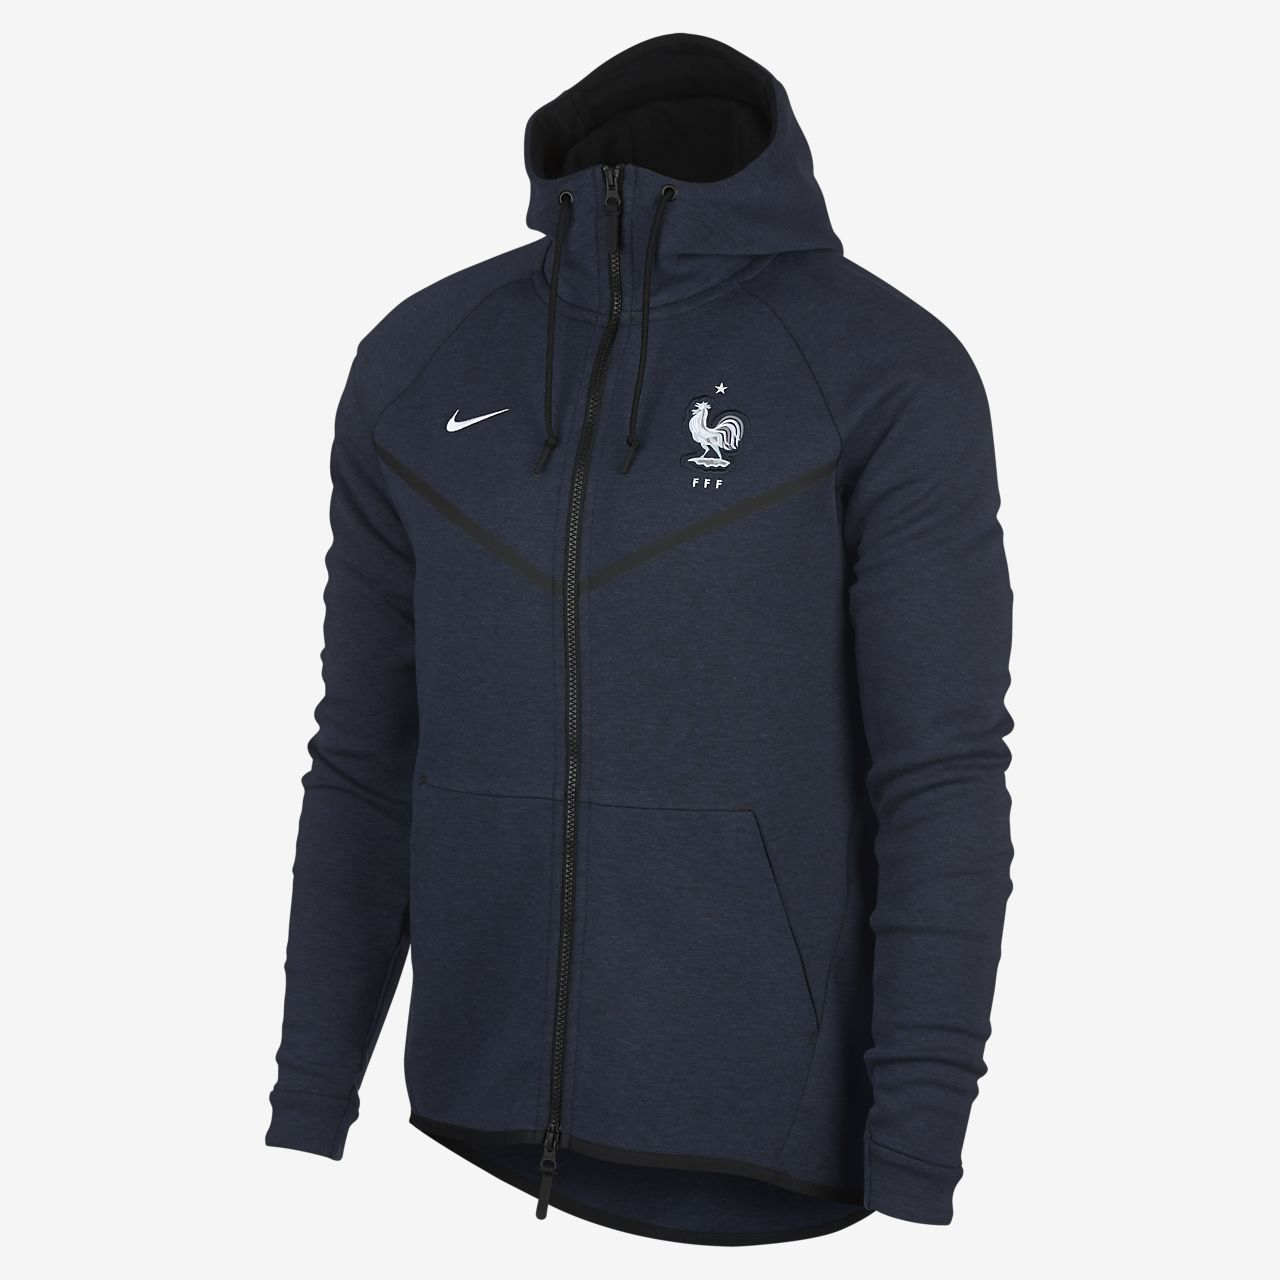 FFF Tech Fleece Windrunner Herrenjacke